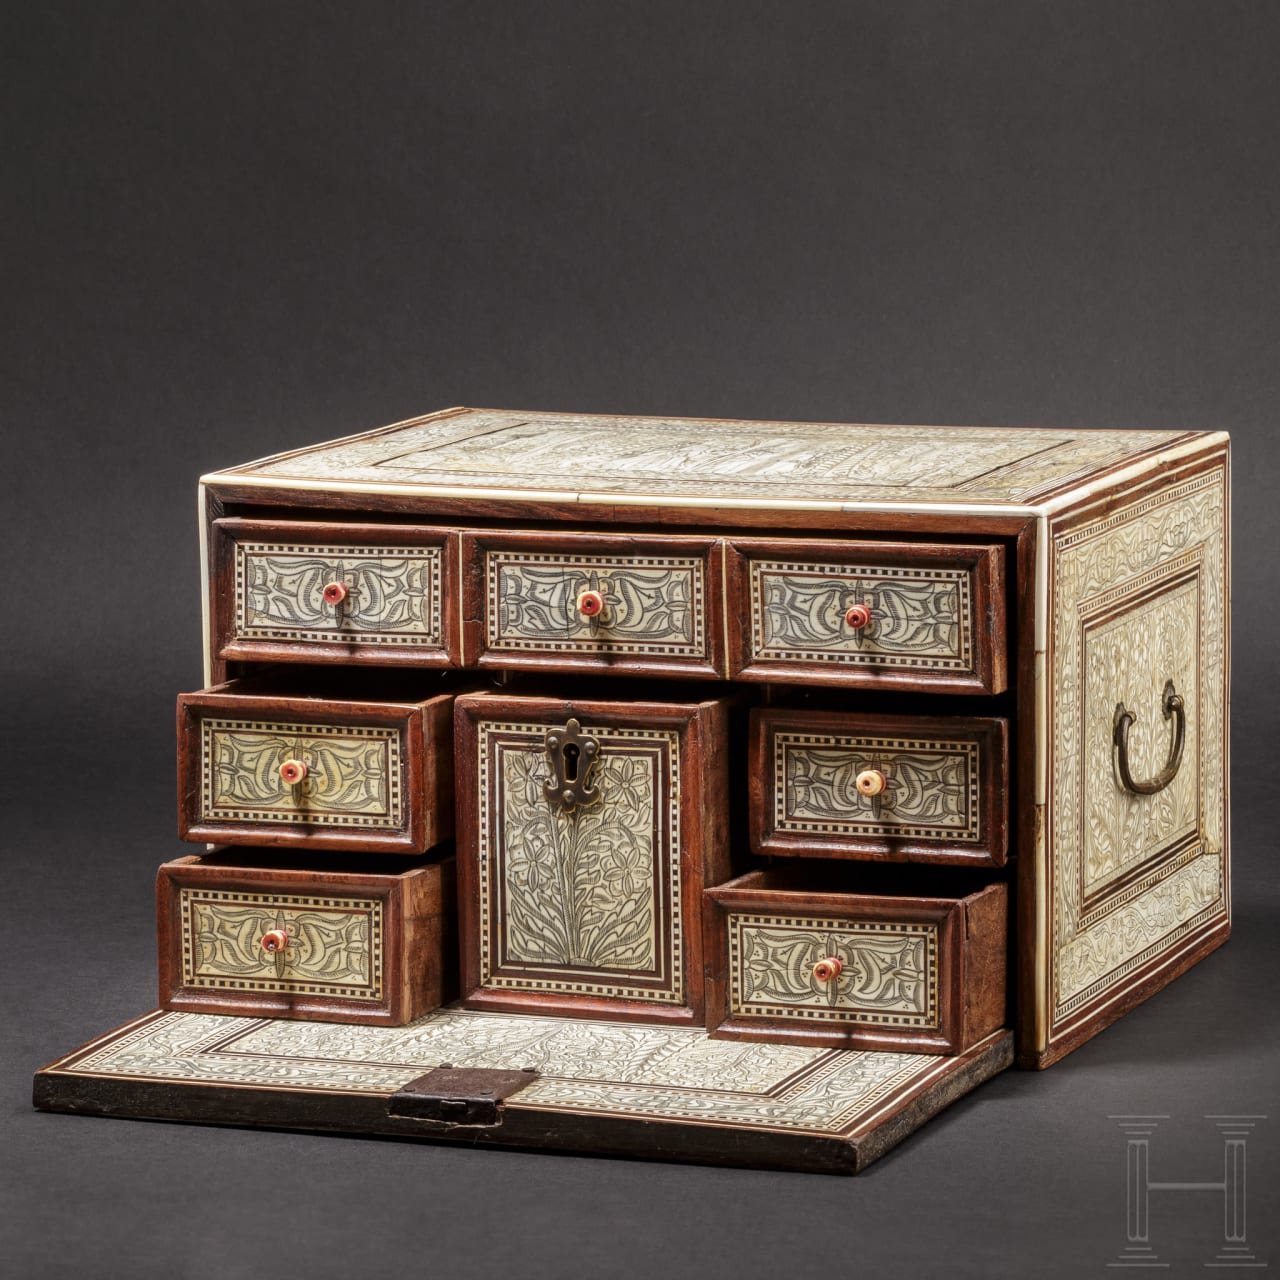 """A rare, small and finely engraved North/West Indian """"Mughal"""" cabinet casket, 17th century"""